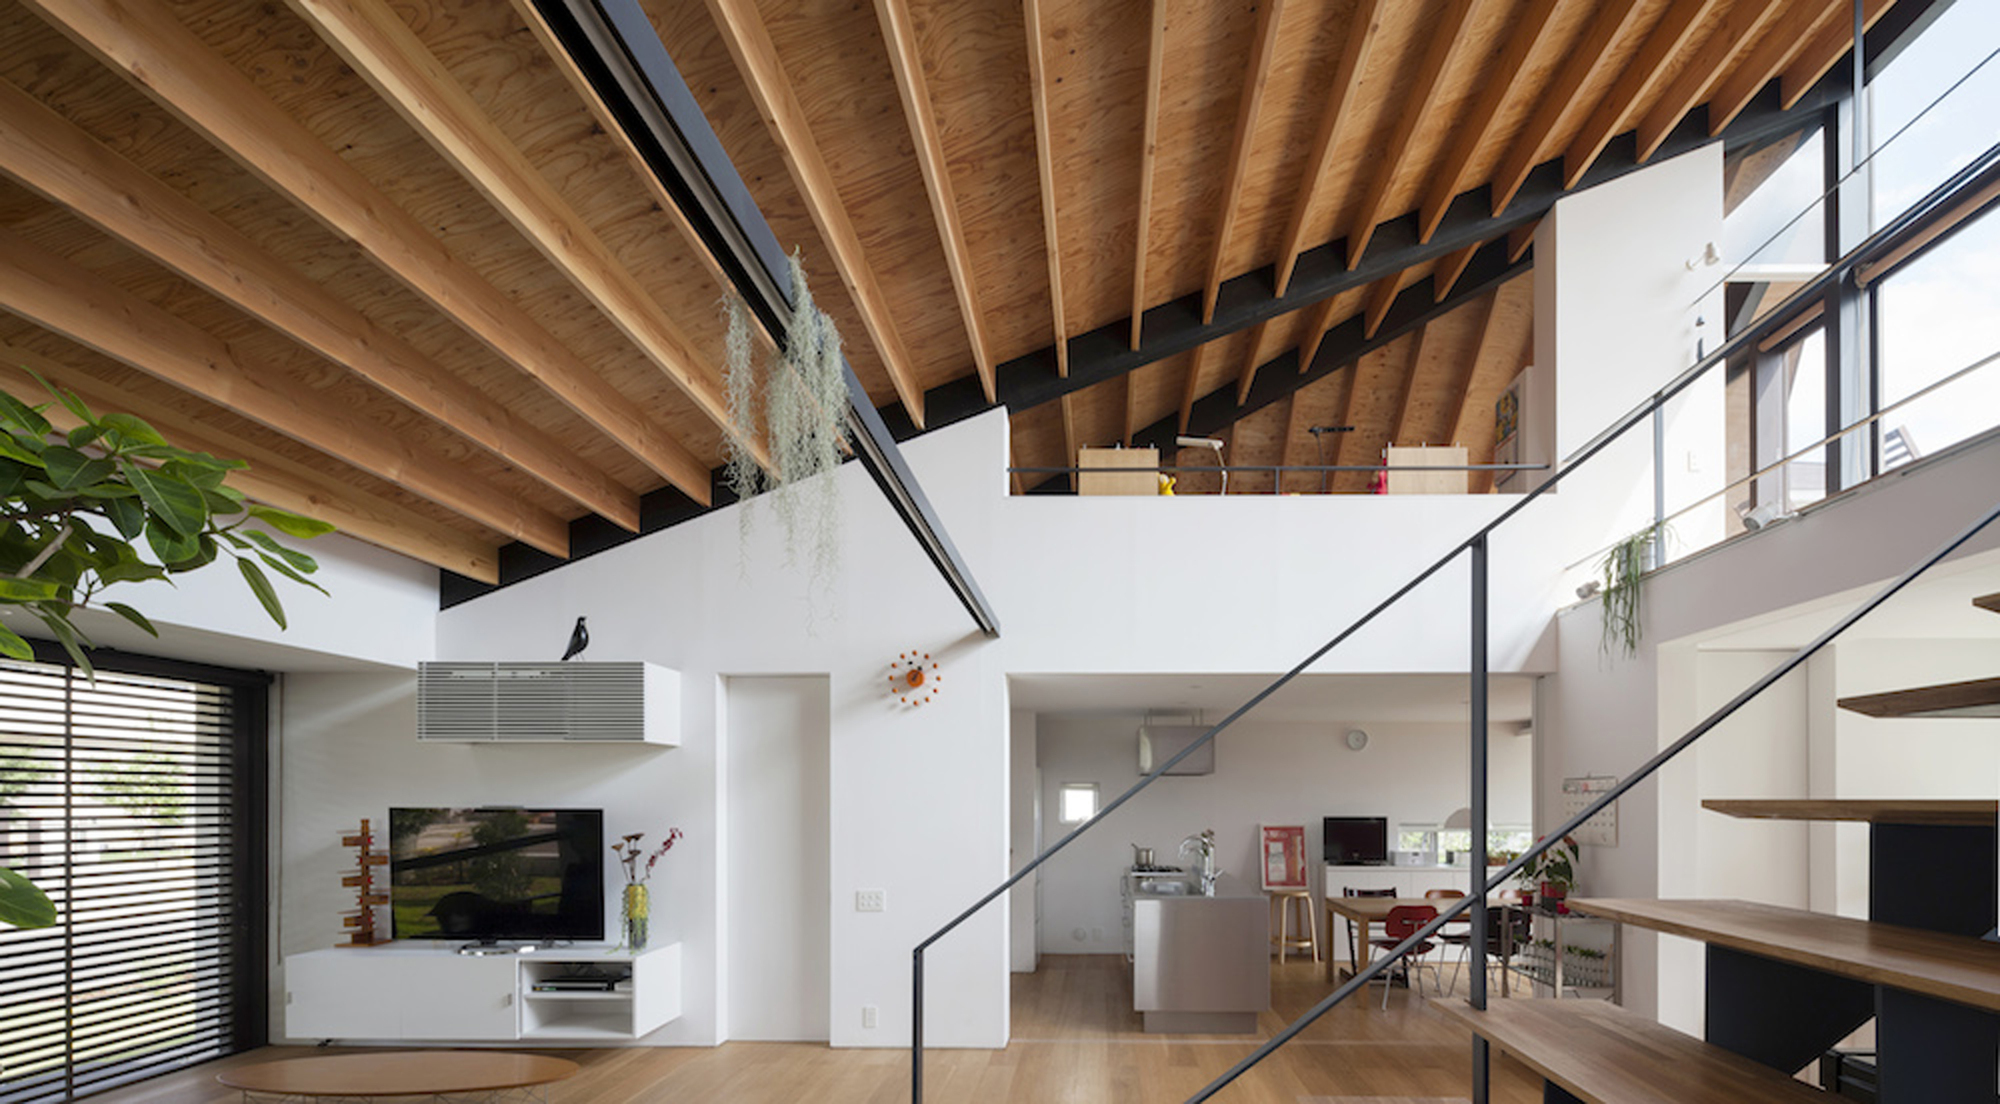 52eb1ee7e8e44e2dbe00009c_house-with-a-large-hipped-roof-naoi-architecture-design-office_housewithlhr_19